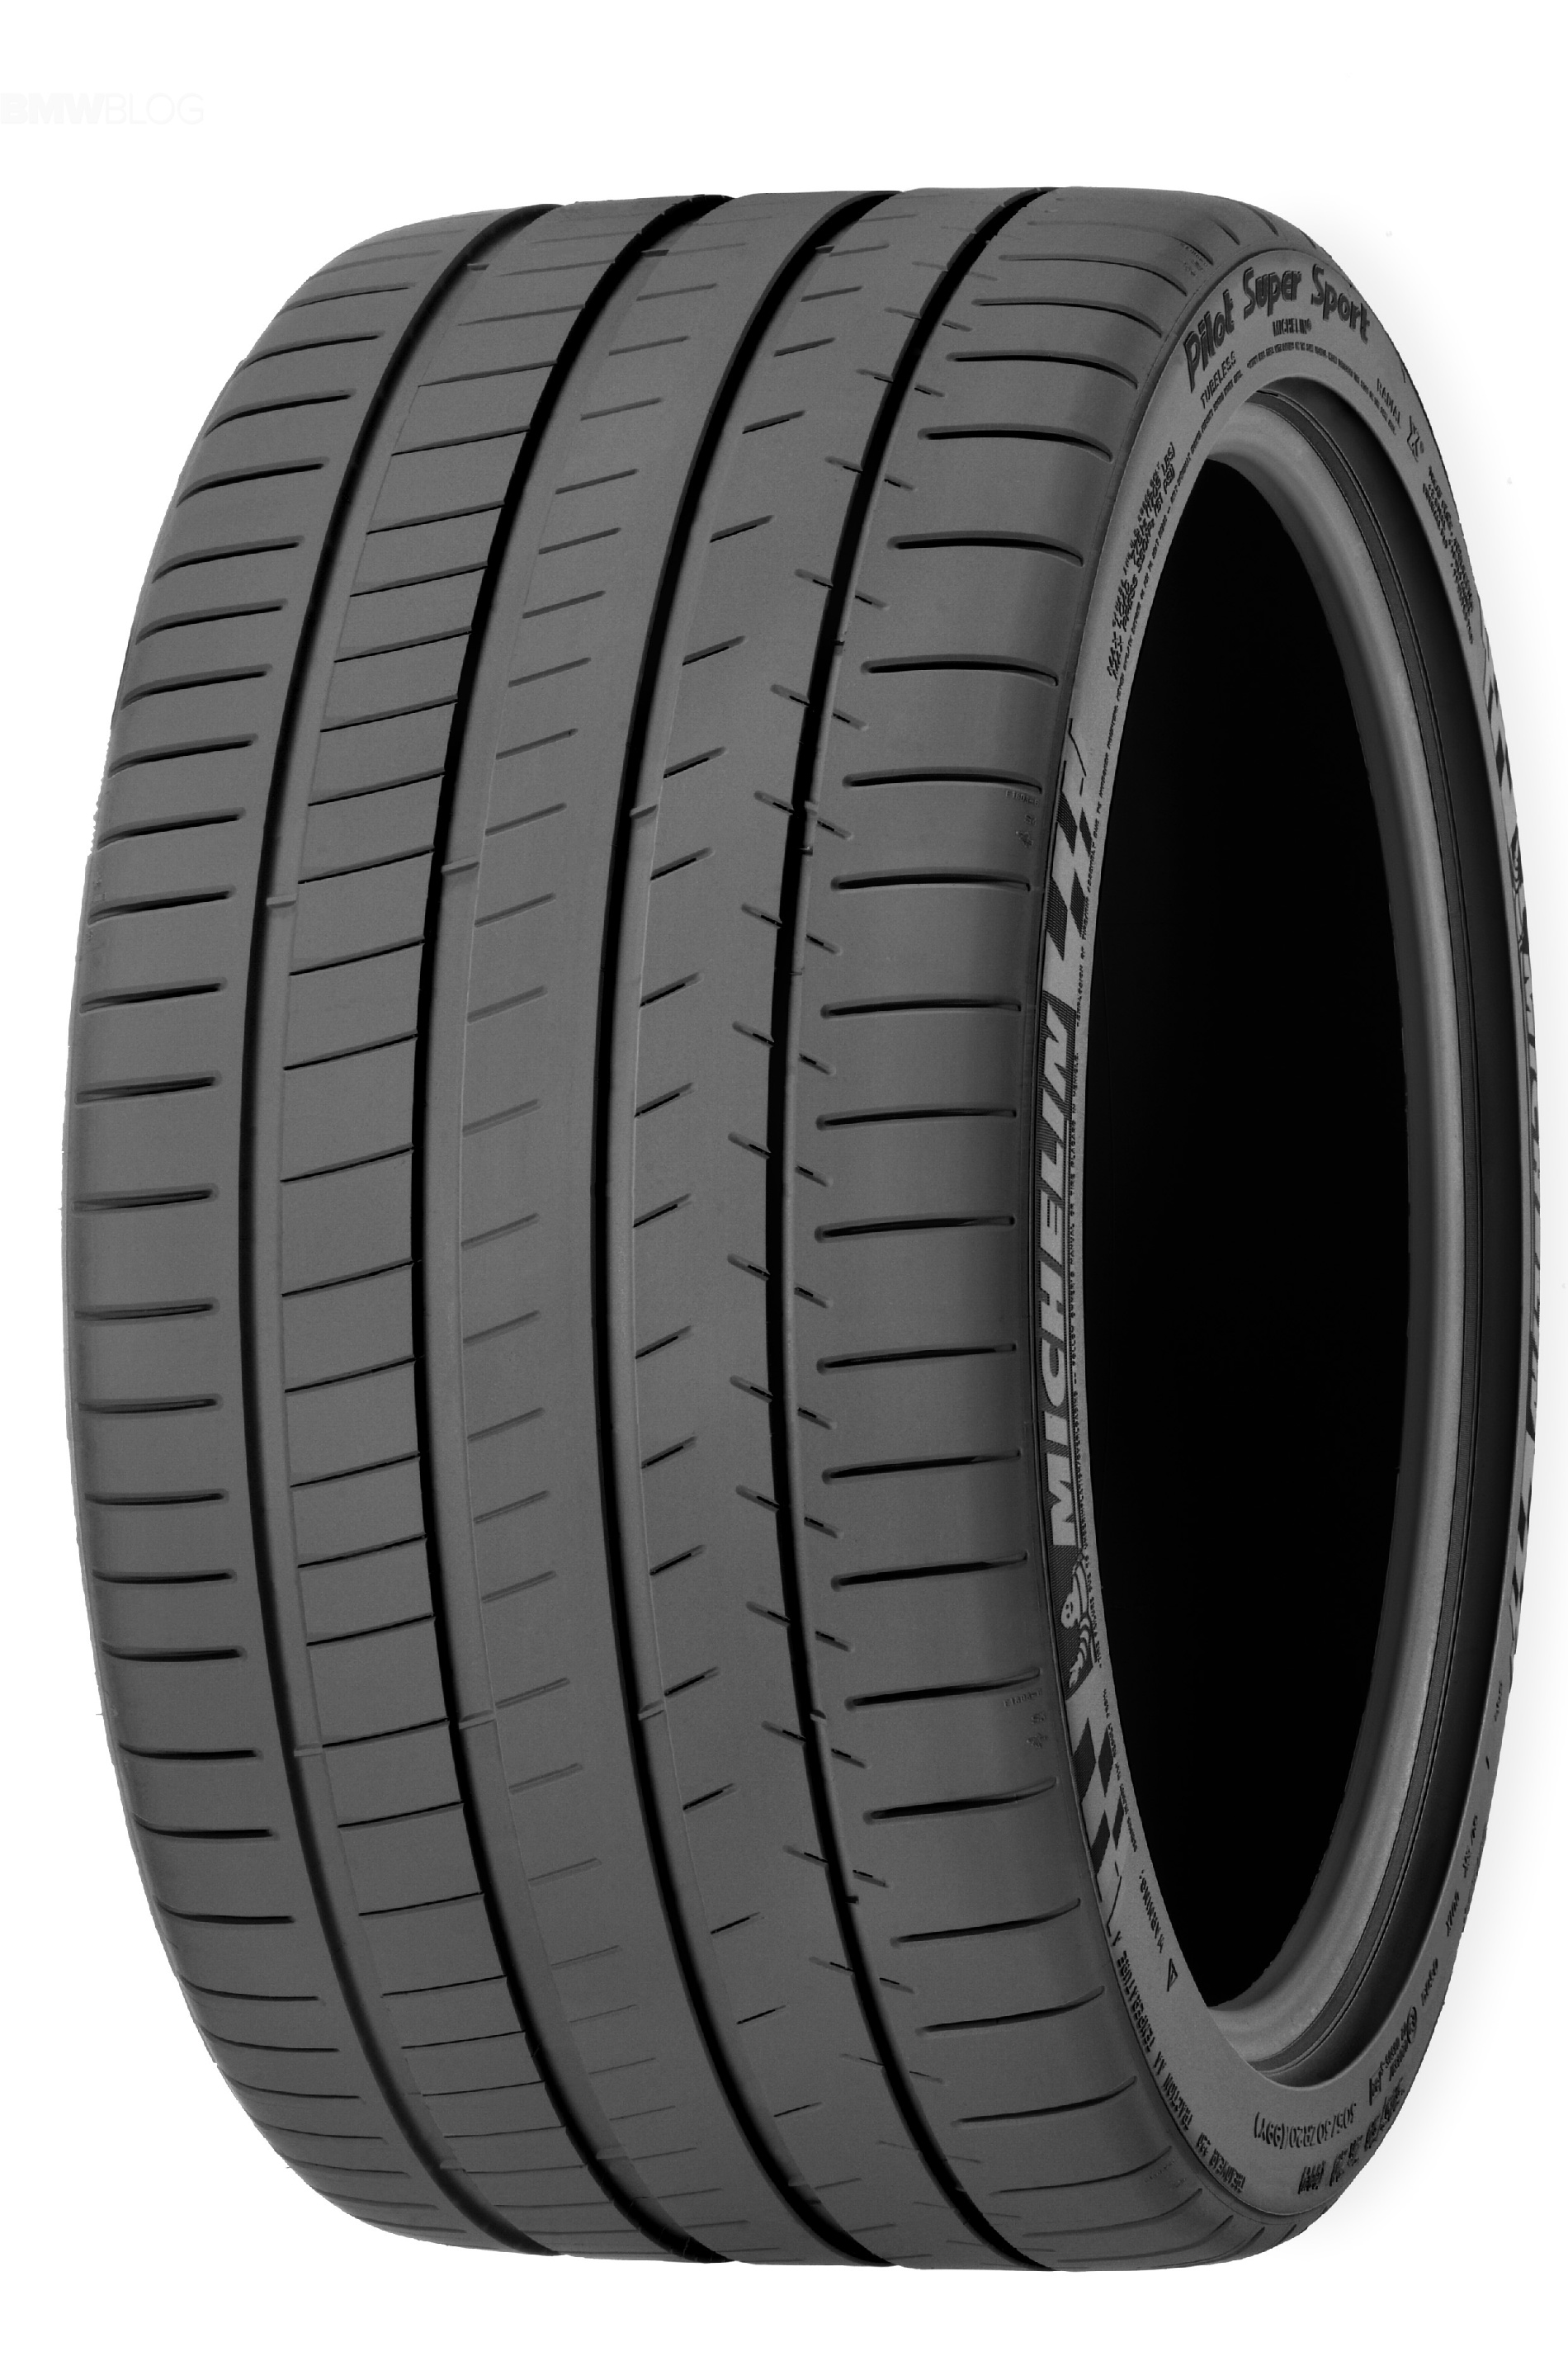 Летняя шина Michelin Pilot Super Sport 275/30 R20